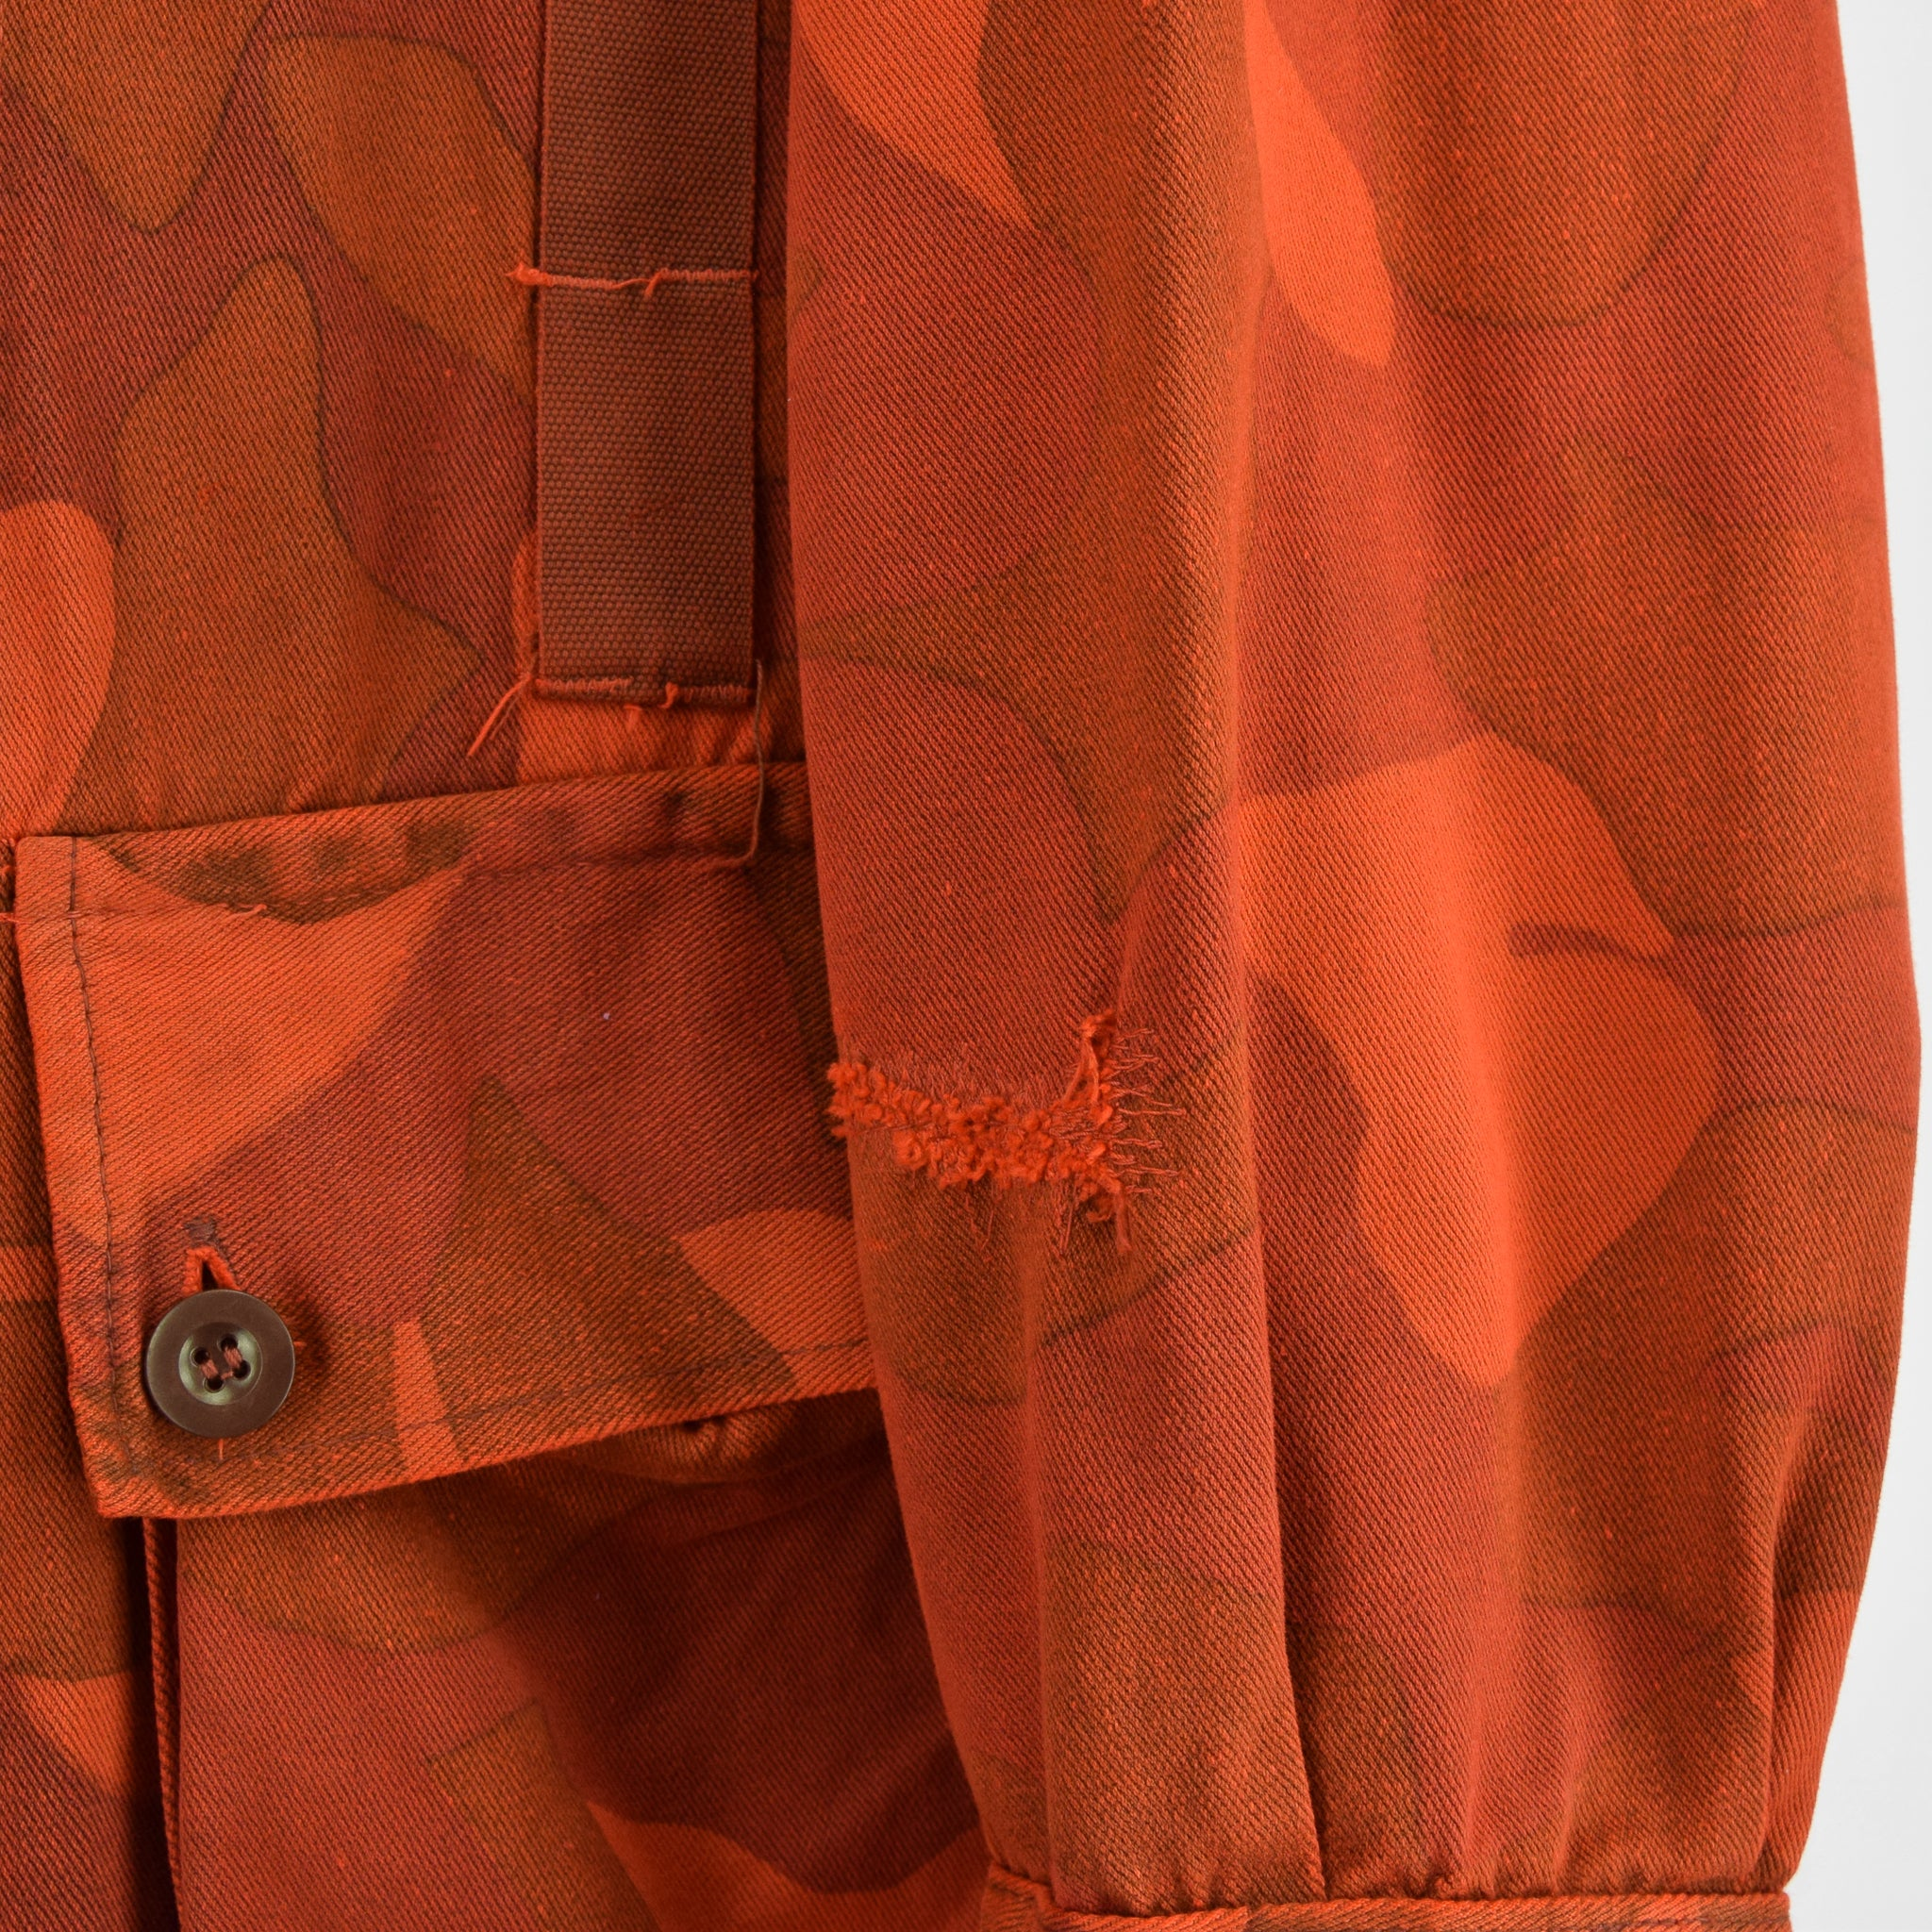 Vintage 70s Military Finnish Army Orange Overdyed Camo Mountain Field Jacket XL arm